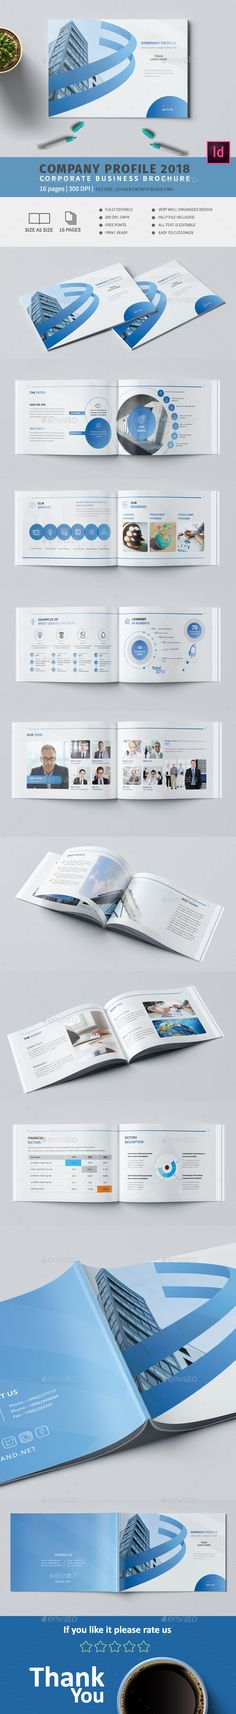 #Company A5 #Profile - #Corporate Brochures